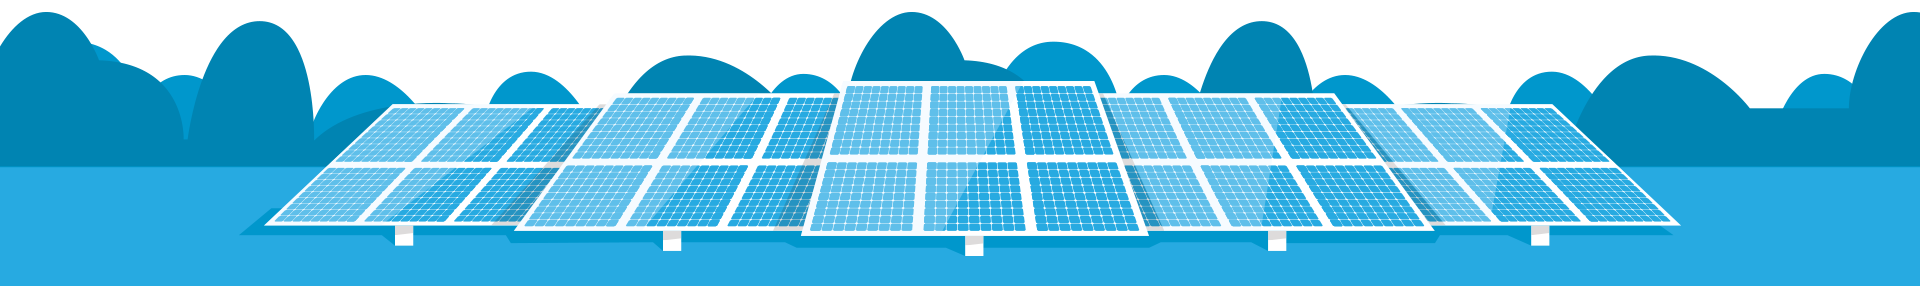 Illustration: Solar power array